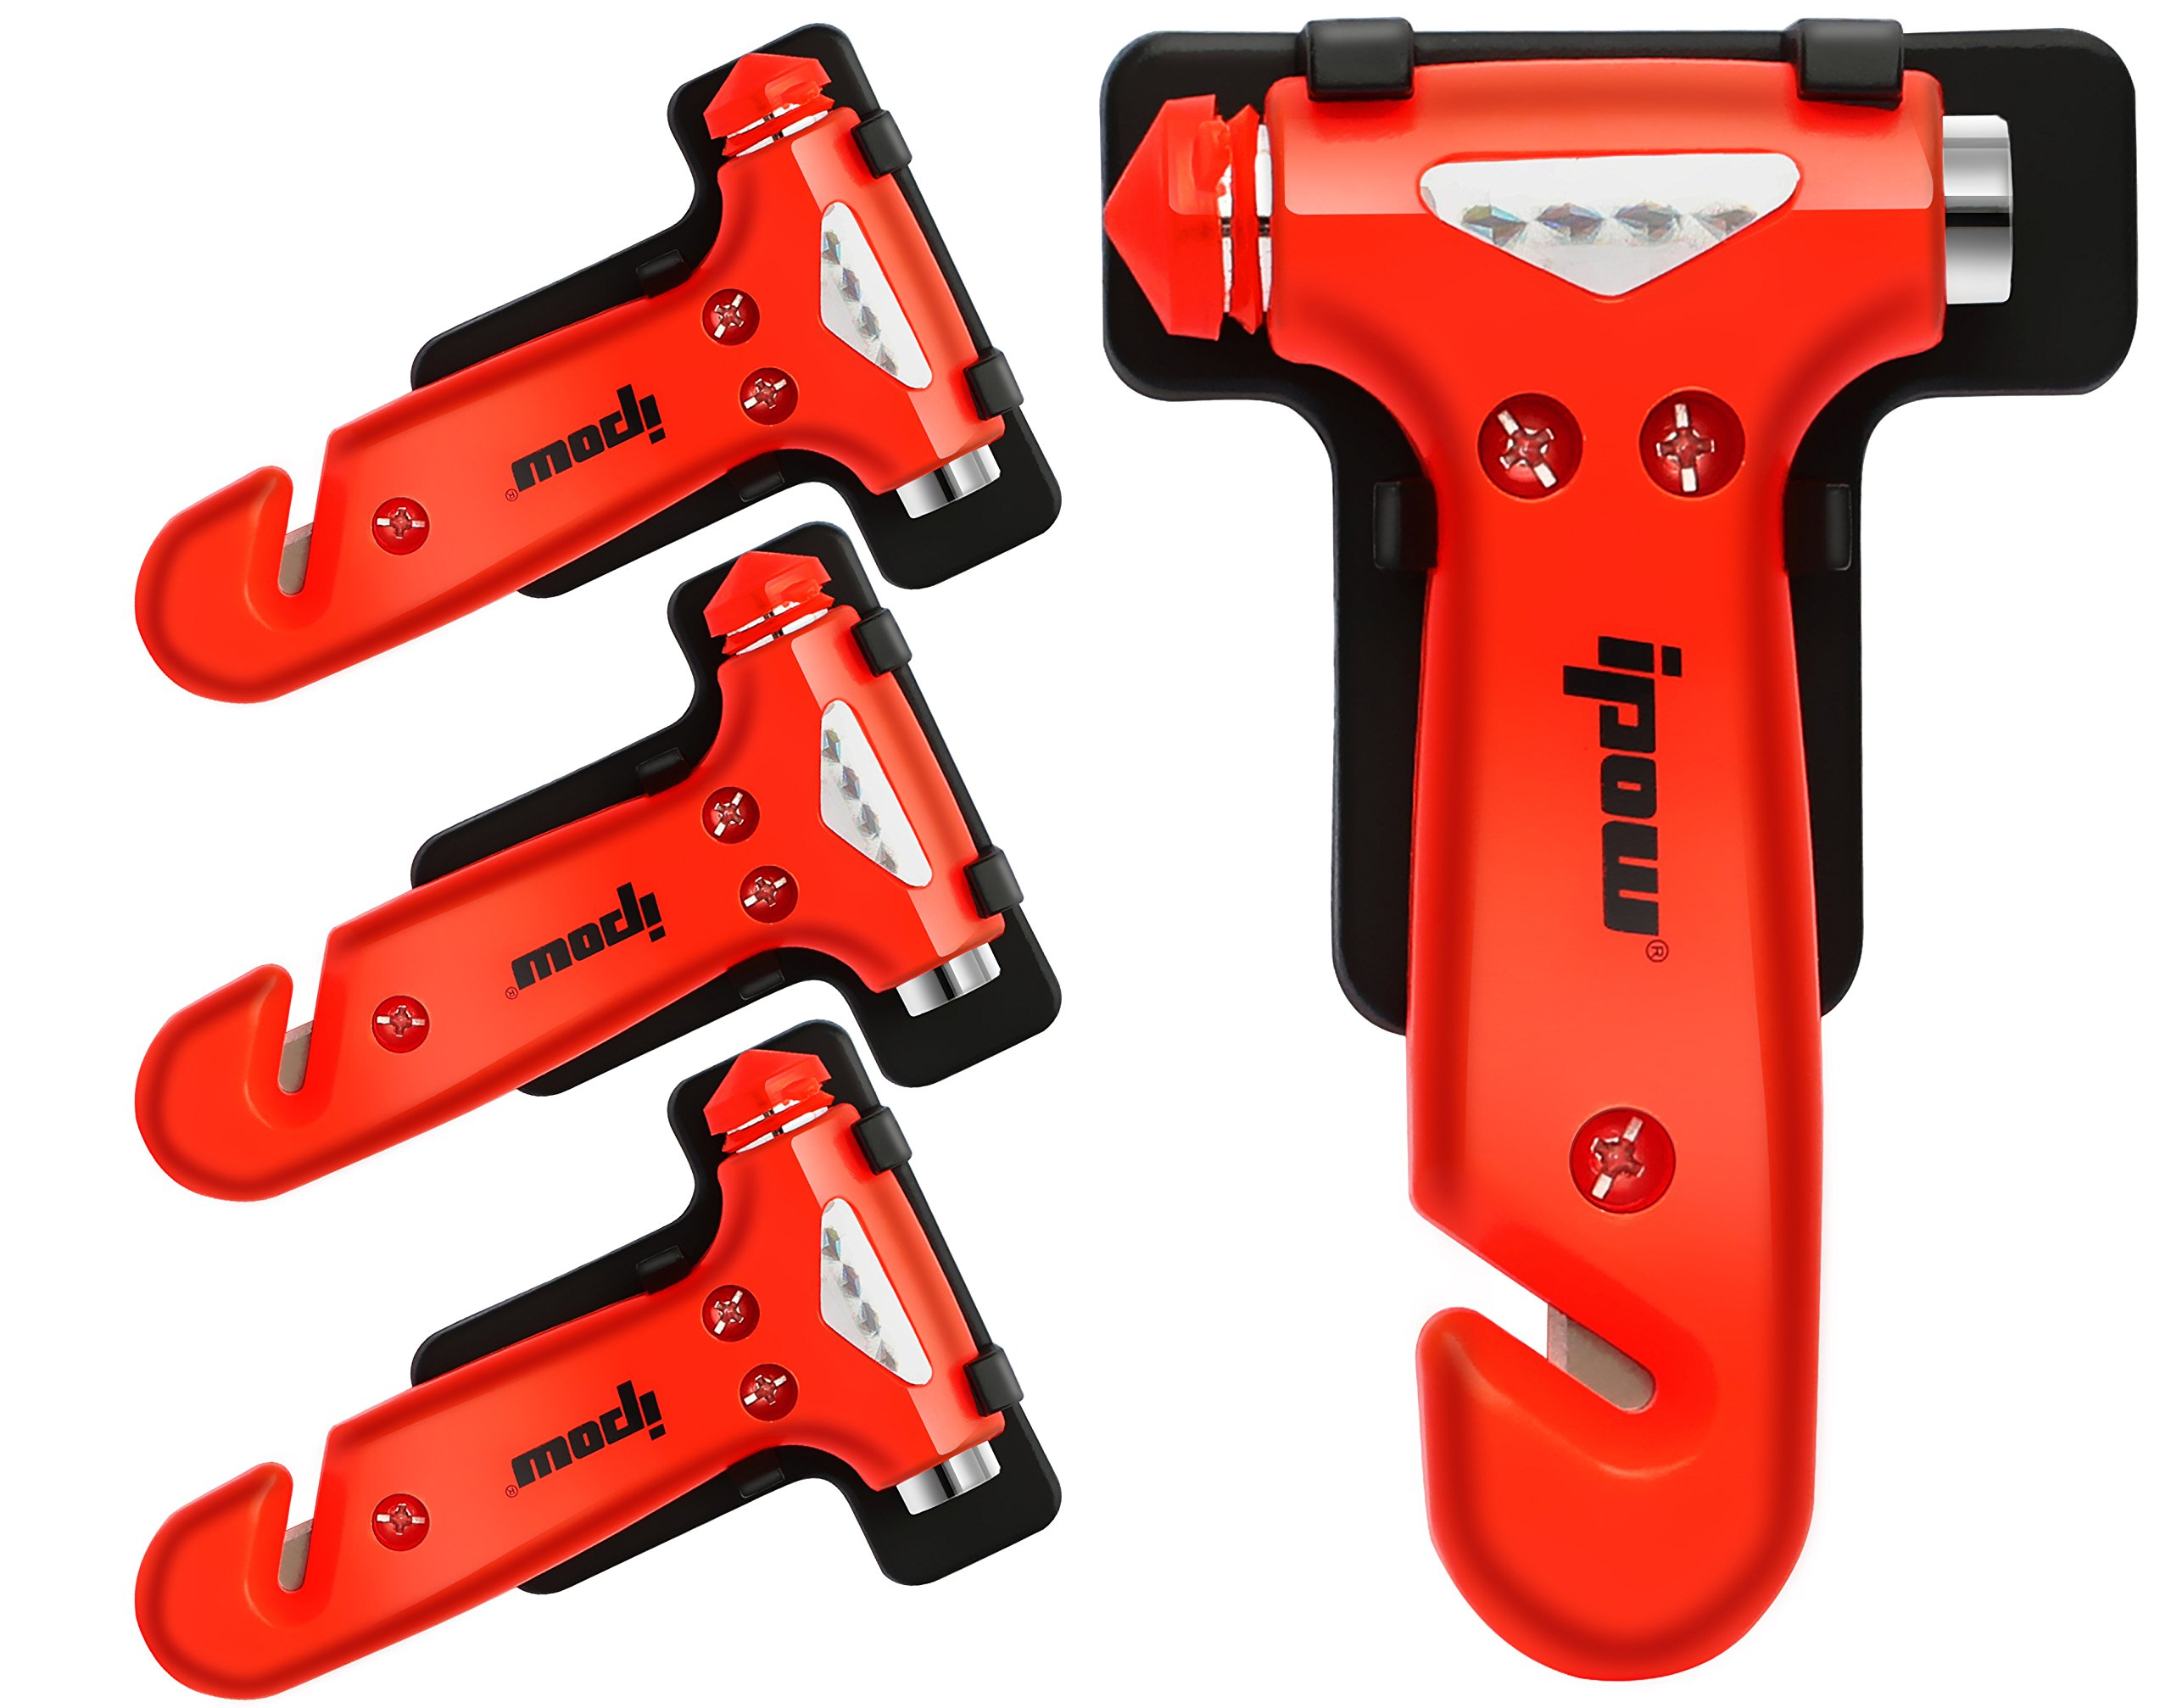 4 PCS of IPOW Car Safety Antiskid Hammer Seatbelt Cutter Emergency Class/Window Punch Breaker Auto Rescue Disaster Escape Life-Saving Hammer Tool,Small by IPOW